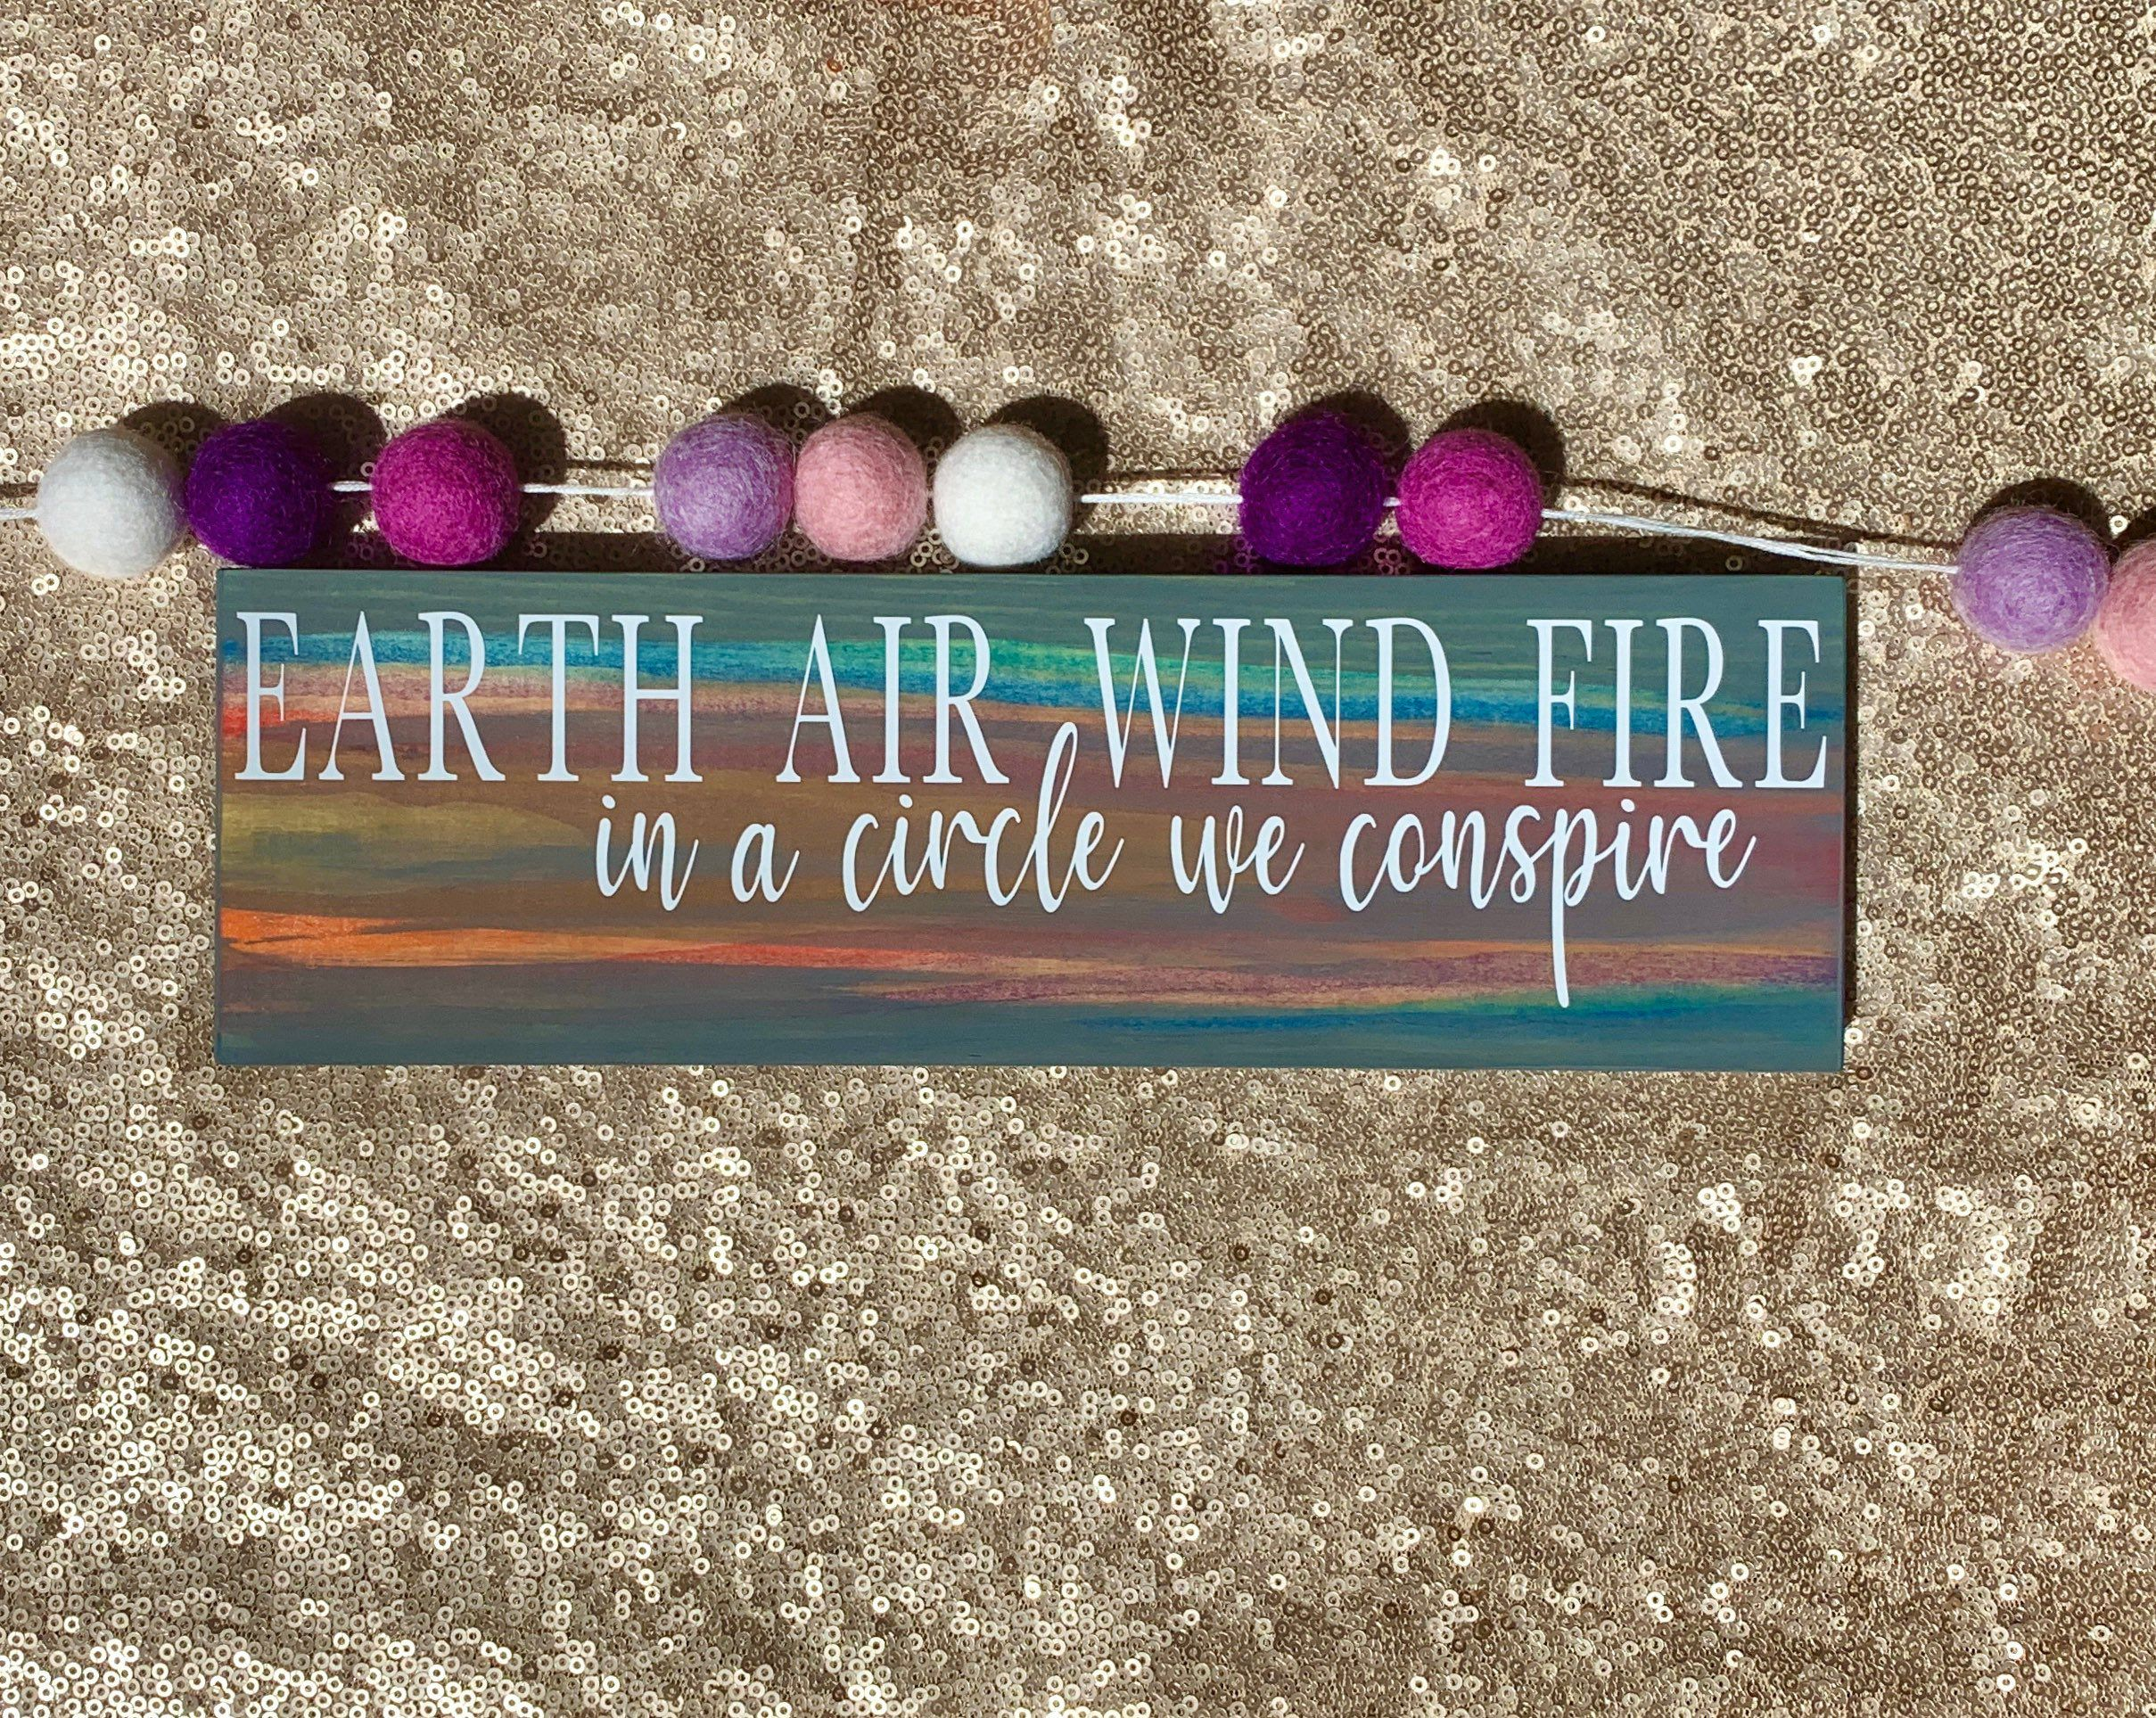 Earth Air Wind Fire Quote Wood Sign   Wiccan Decor   Wiccan Circle Casting   Earth Air Wind Fire Wiccan Sign   Wiccan Home Decor  Boho Witch